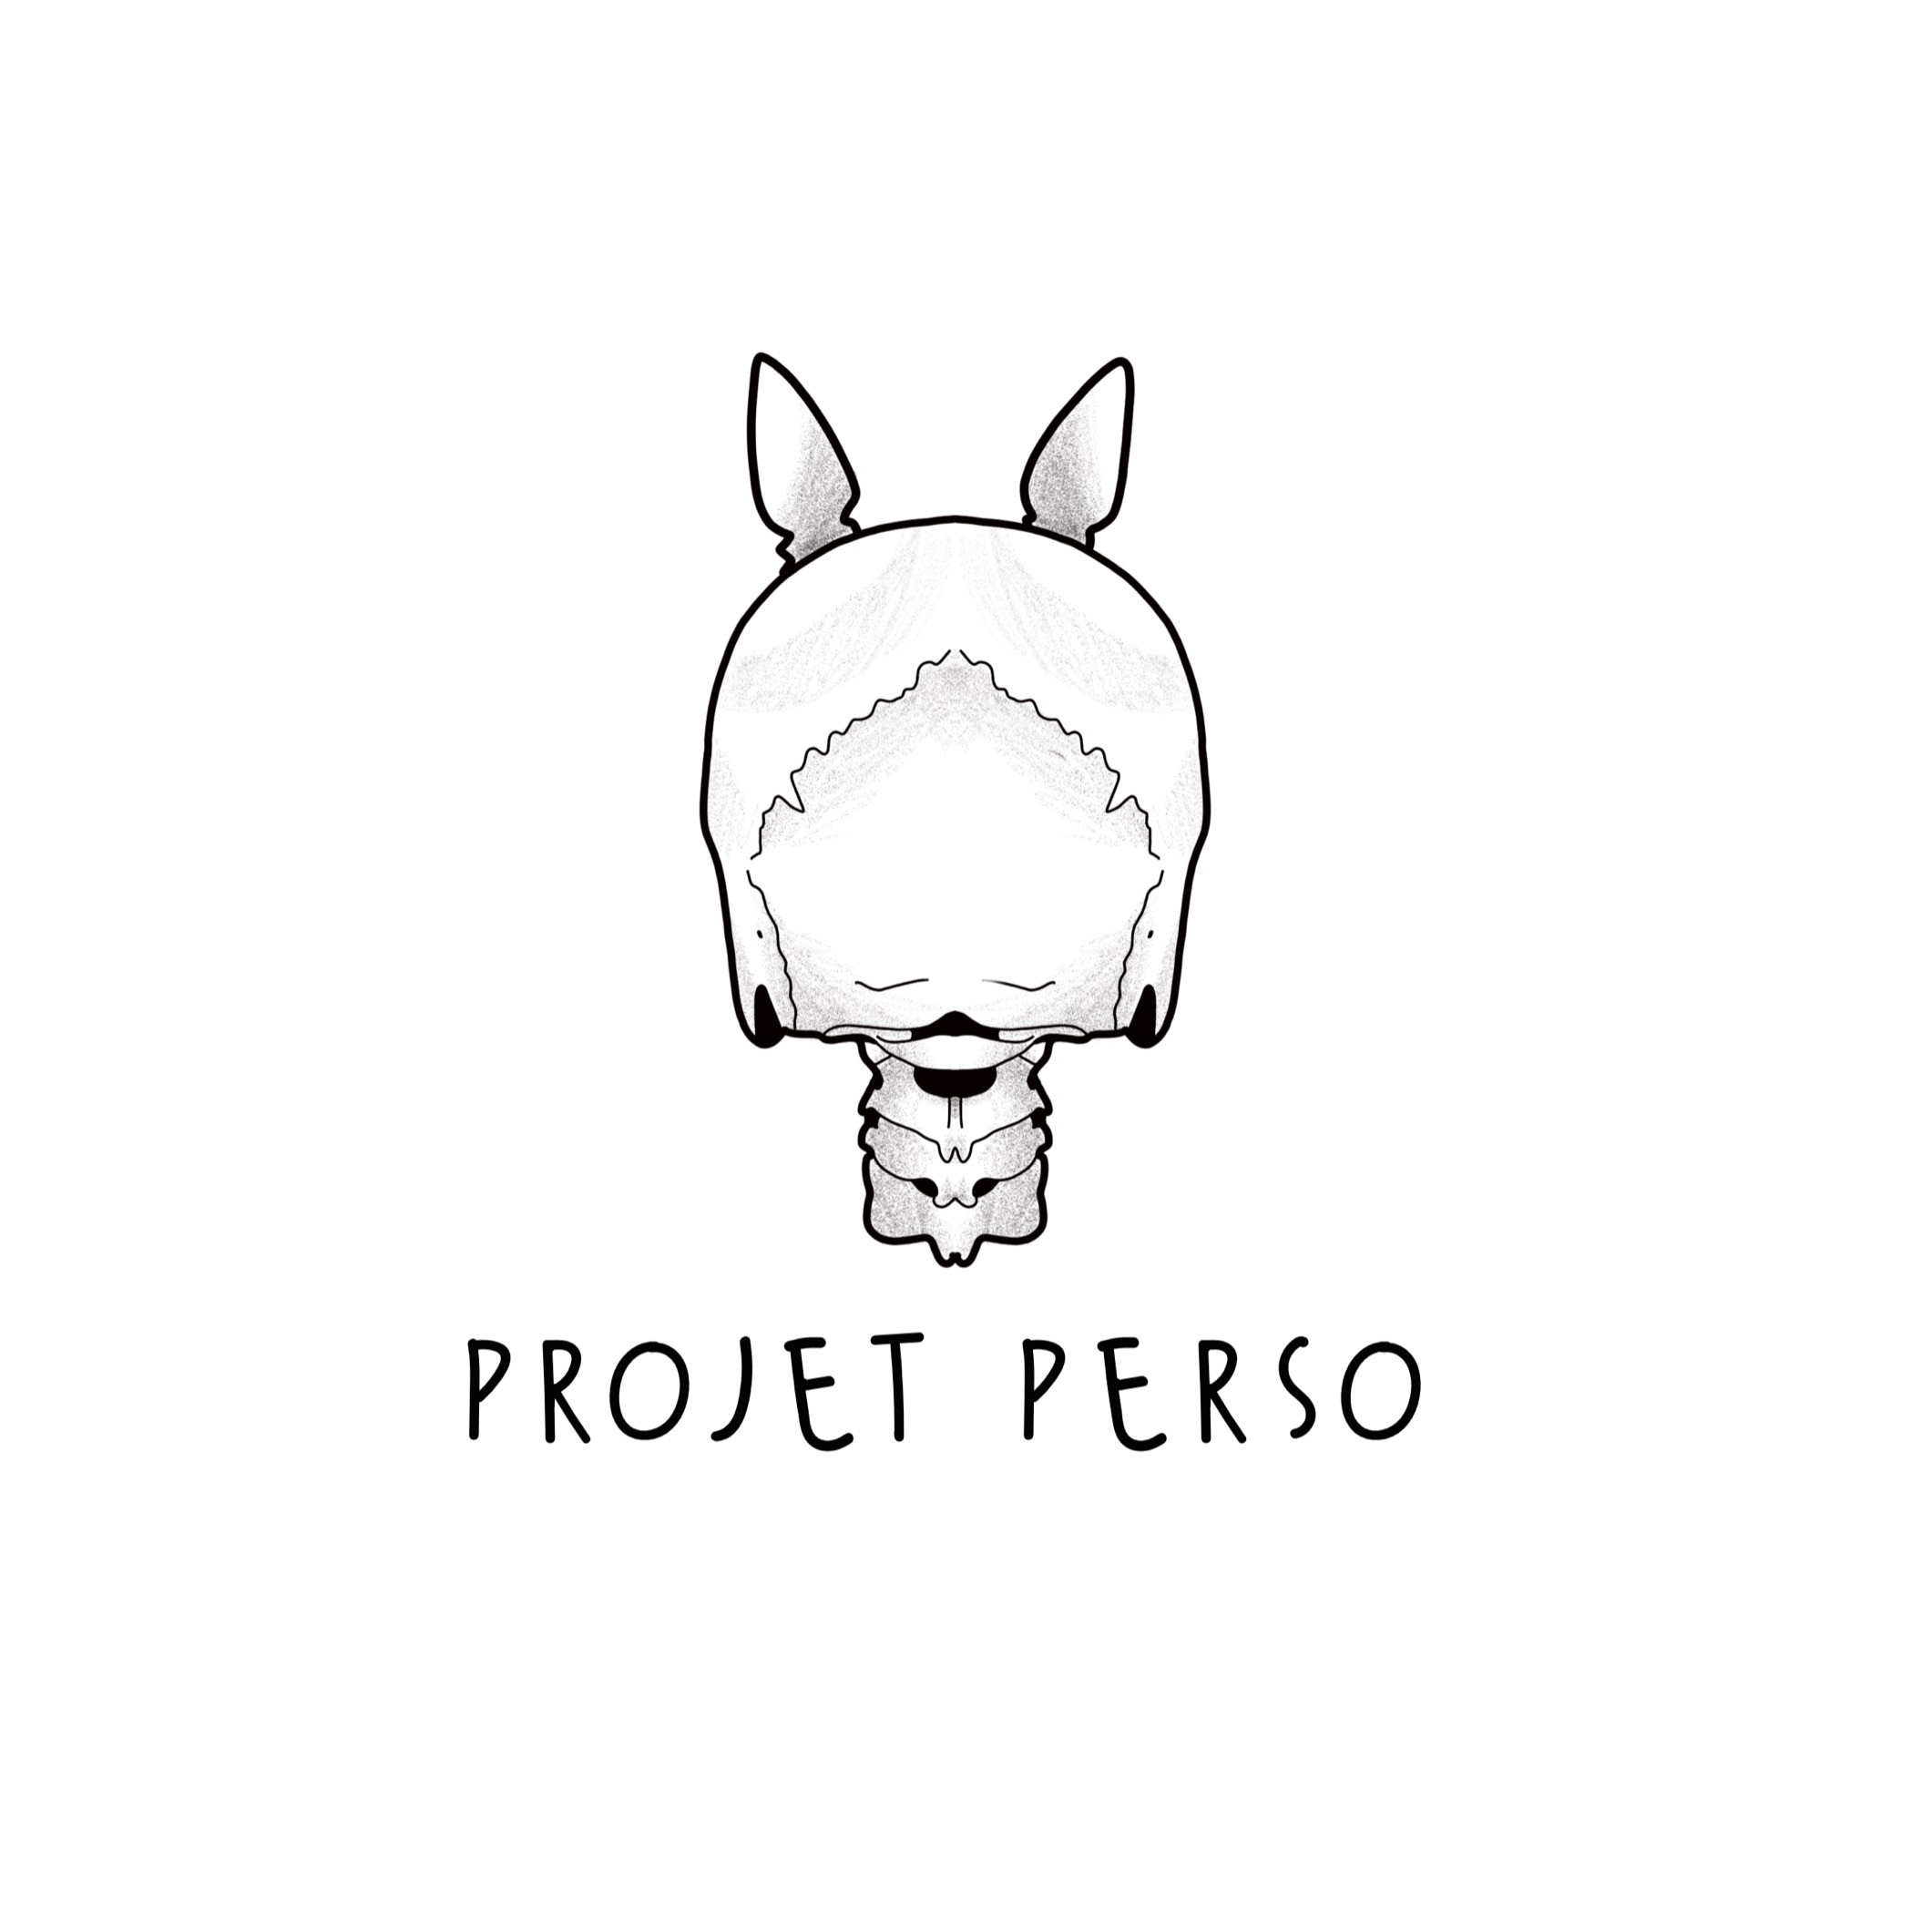 Projet perso ( Acompte )